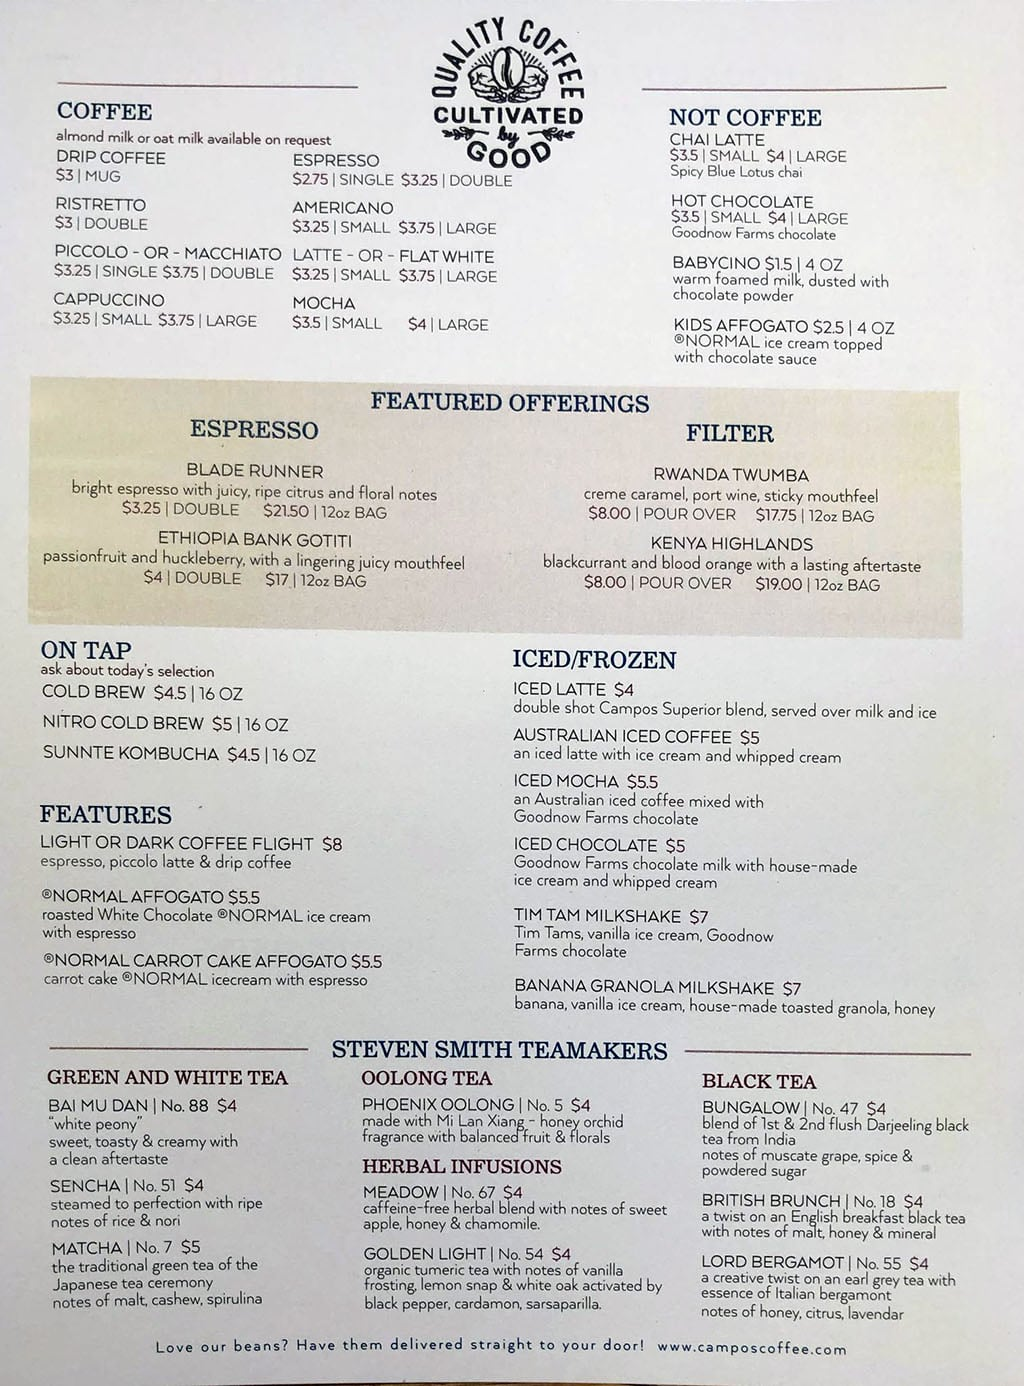 Campos Roastery And Kitchen menu - coffee, tea, drinks